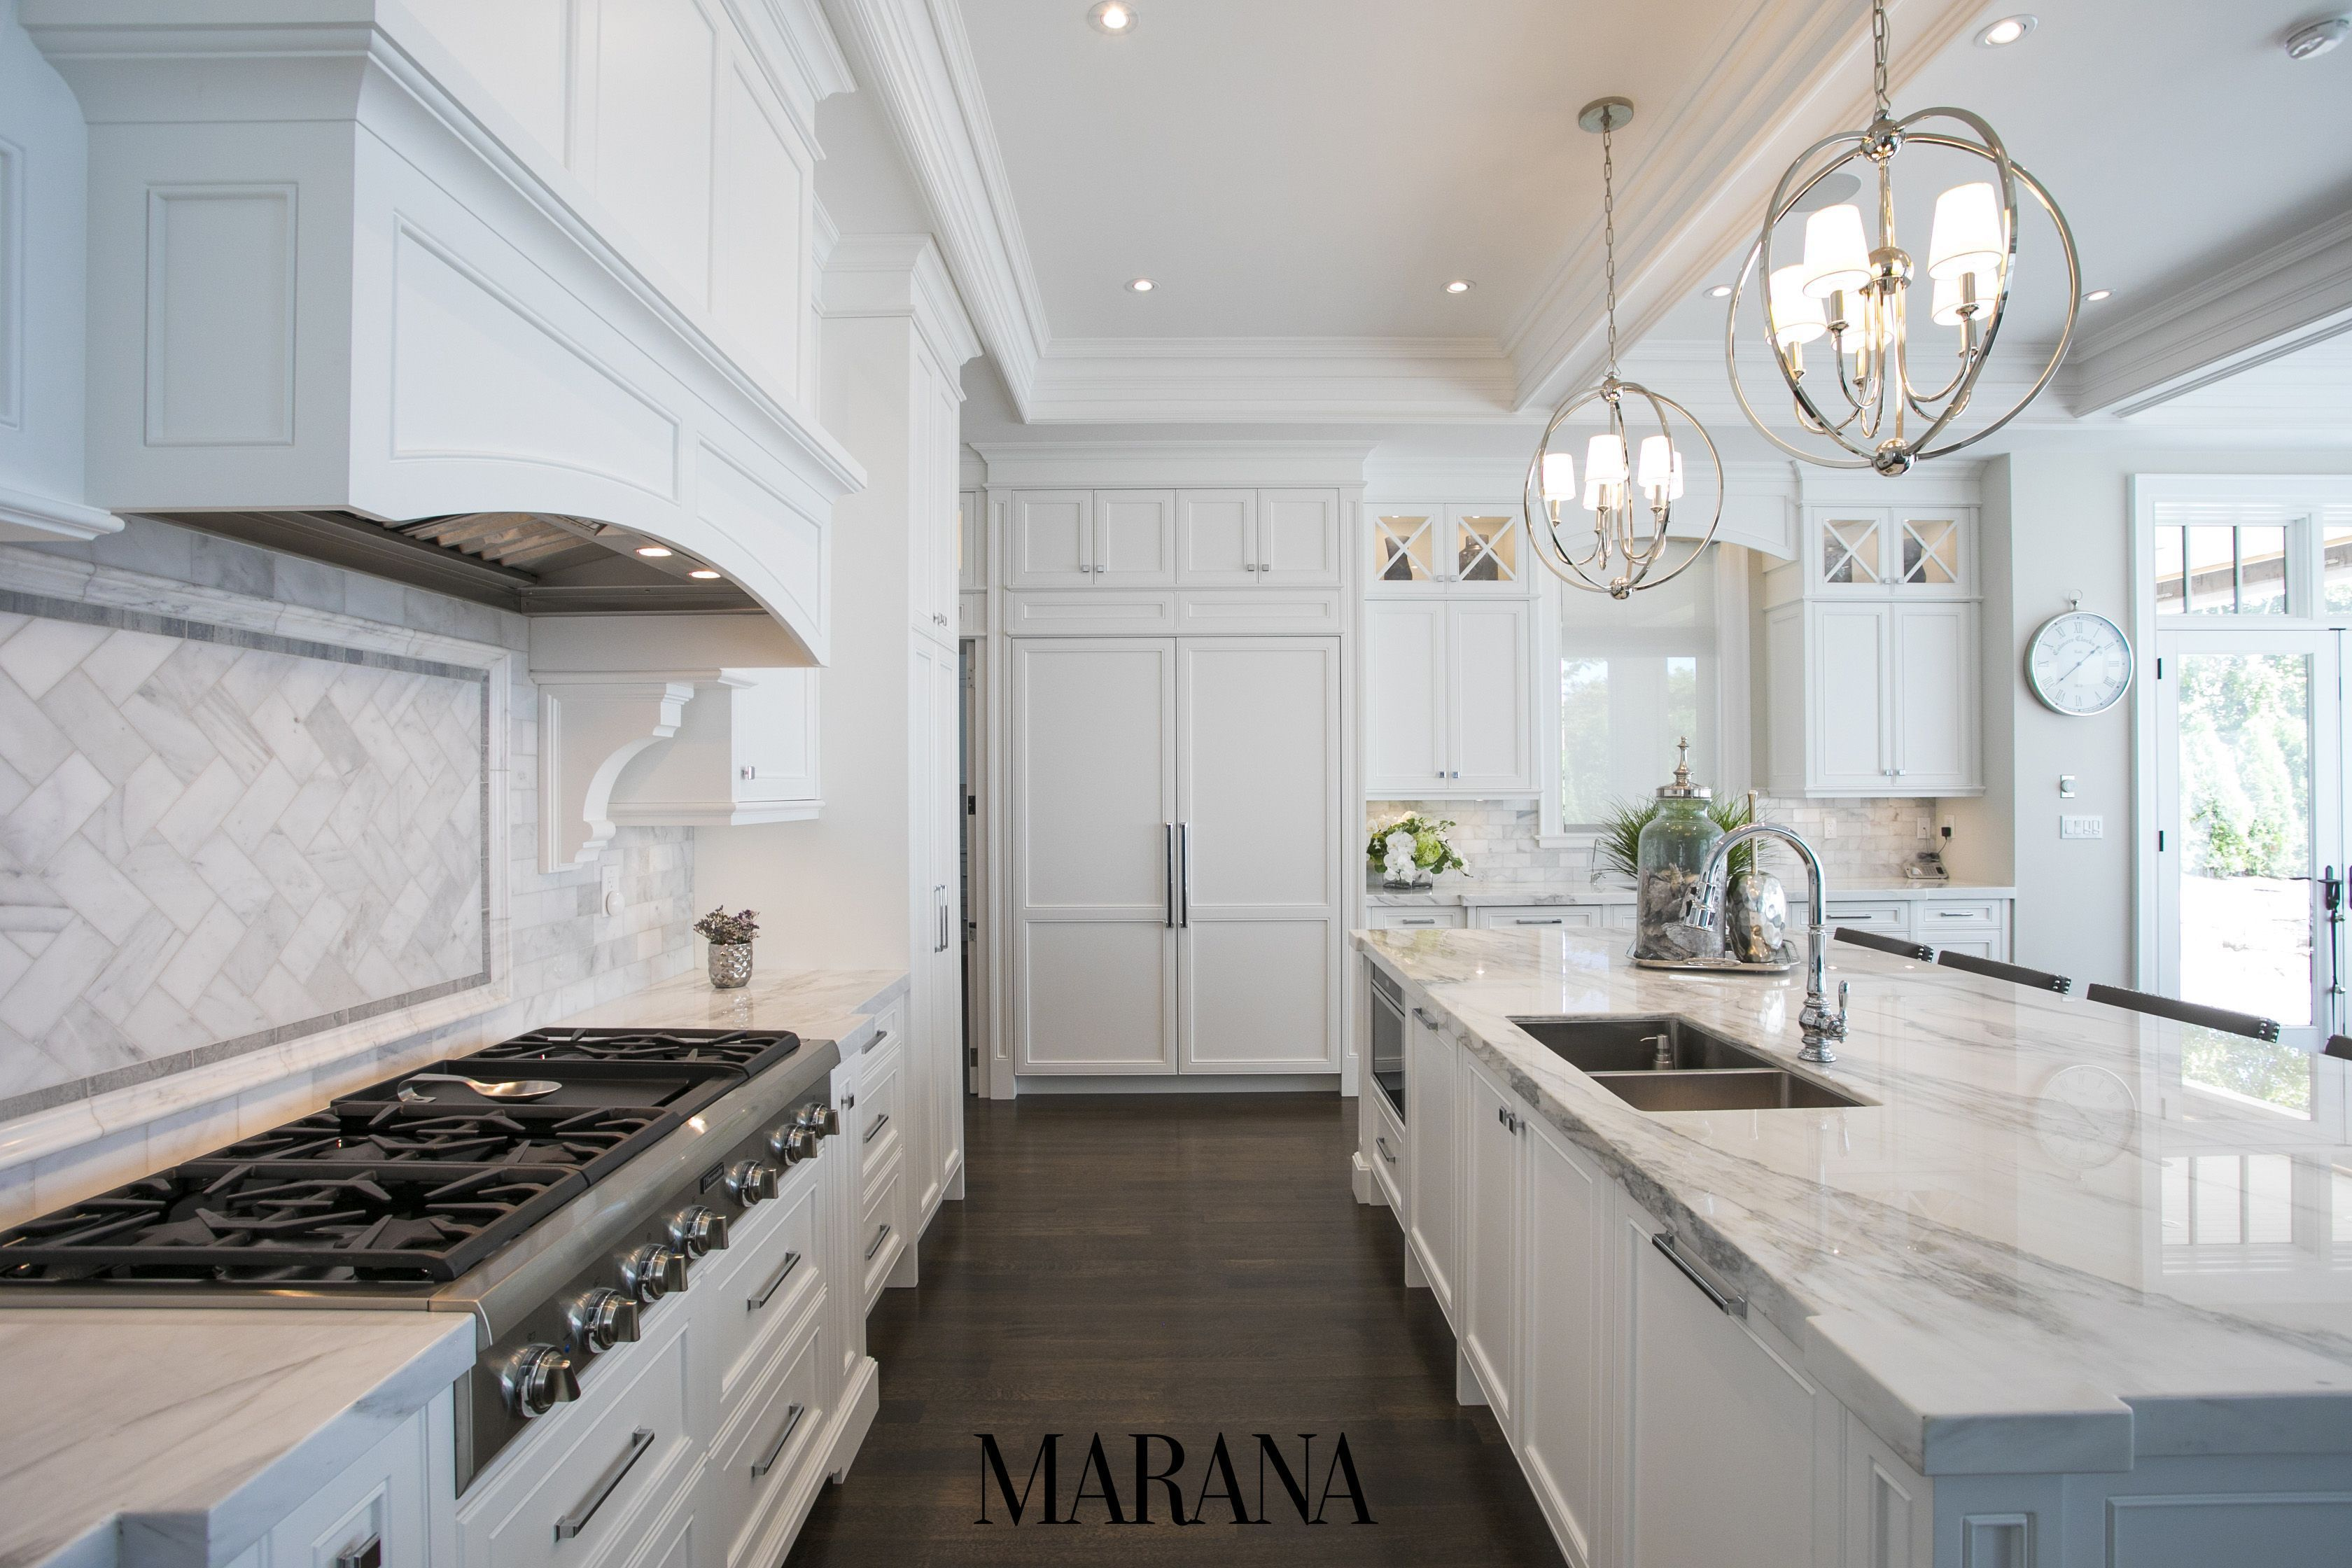 This Luxurious Kitchen Design Is Fit For A Queen Burlington Ontario Cabinetry By Marana Kitchens Luxu Luxury Kitchen Cabinets Luxury Kitchens Kitchen Design